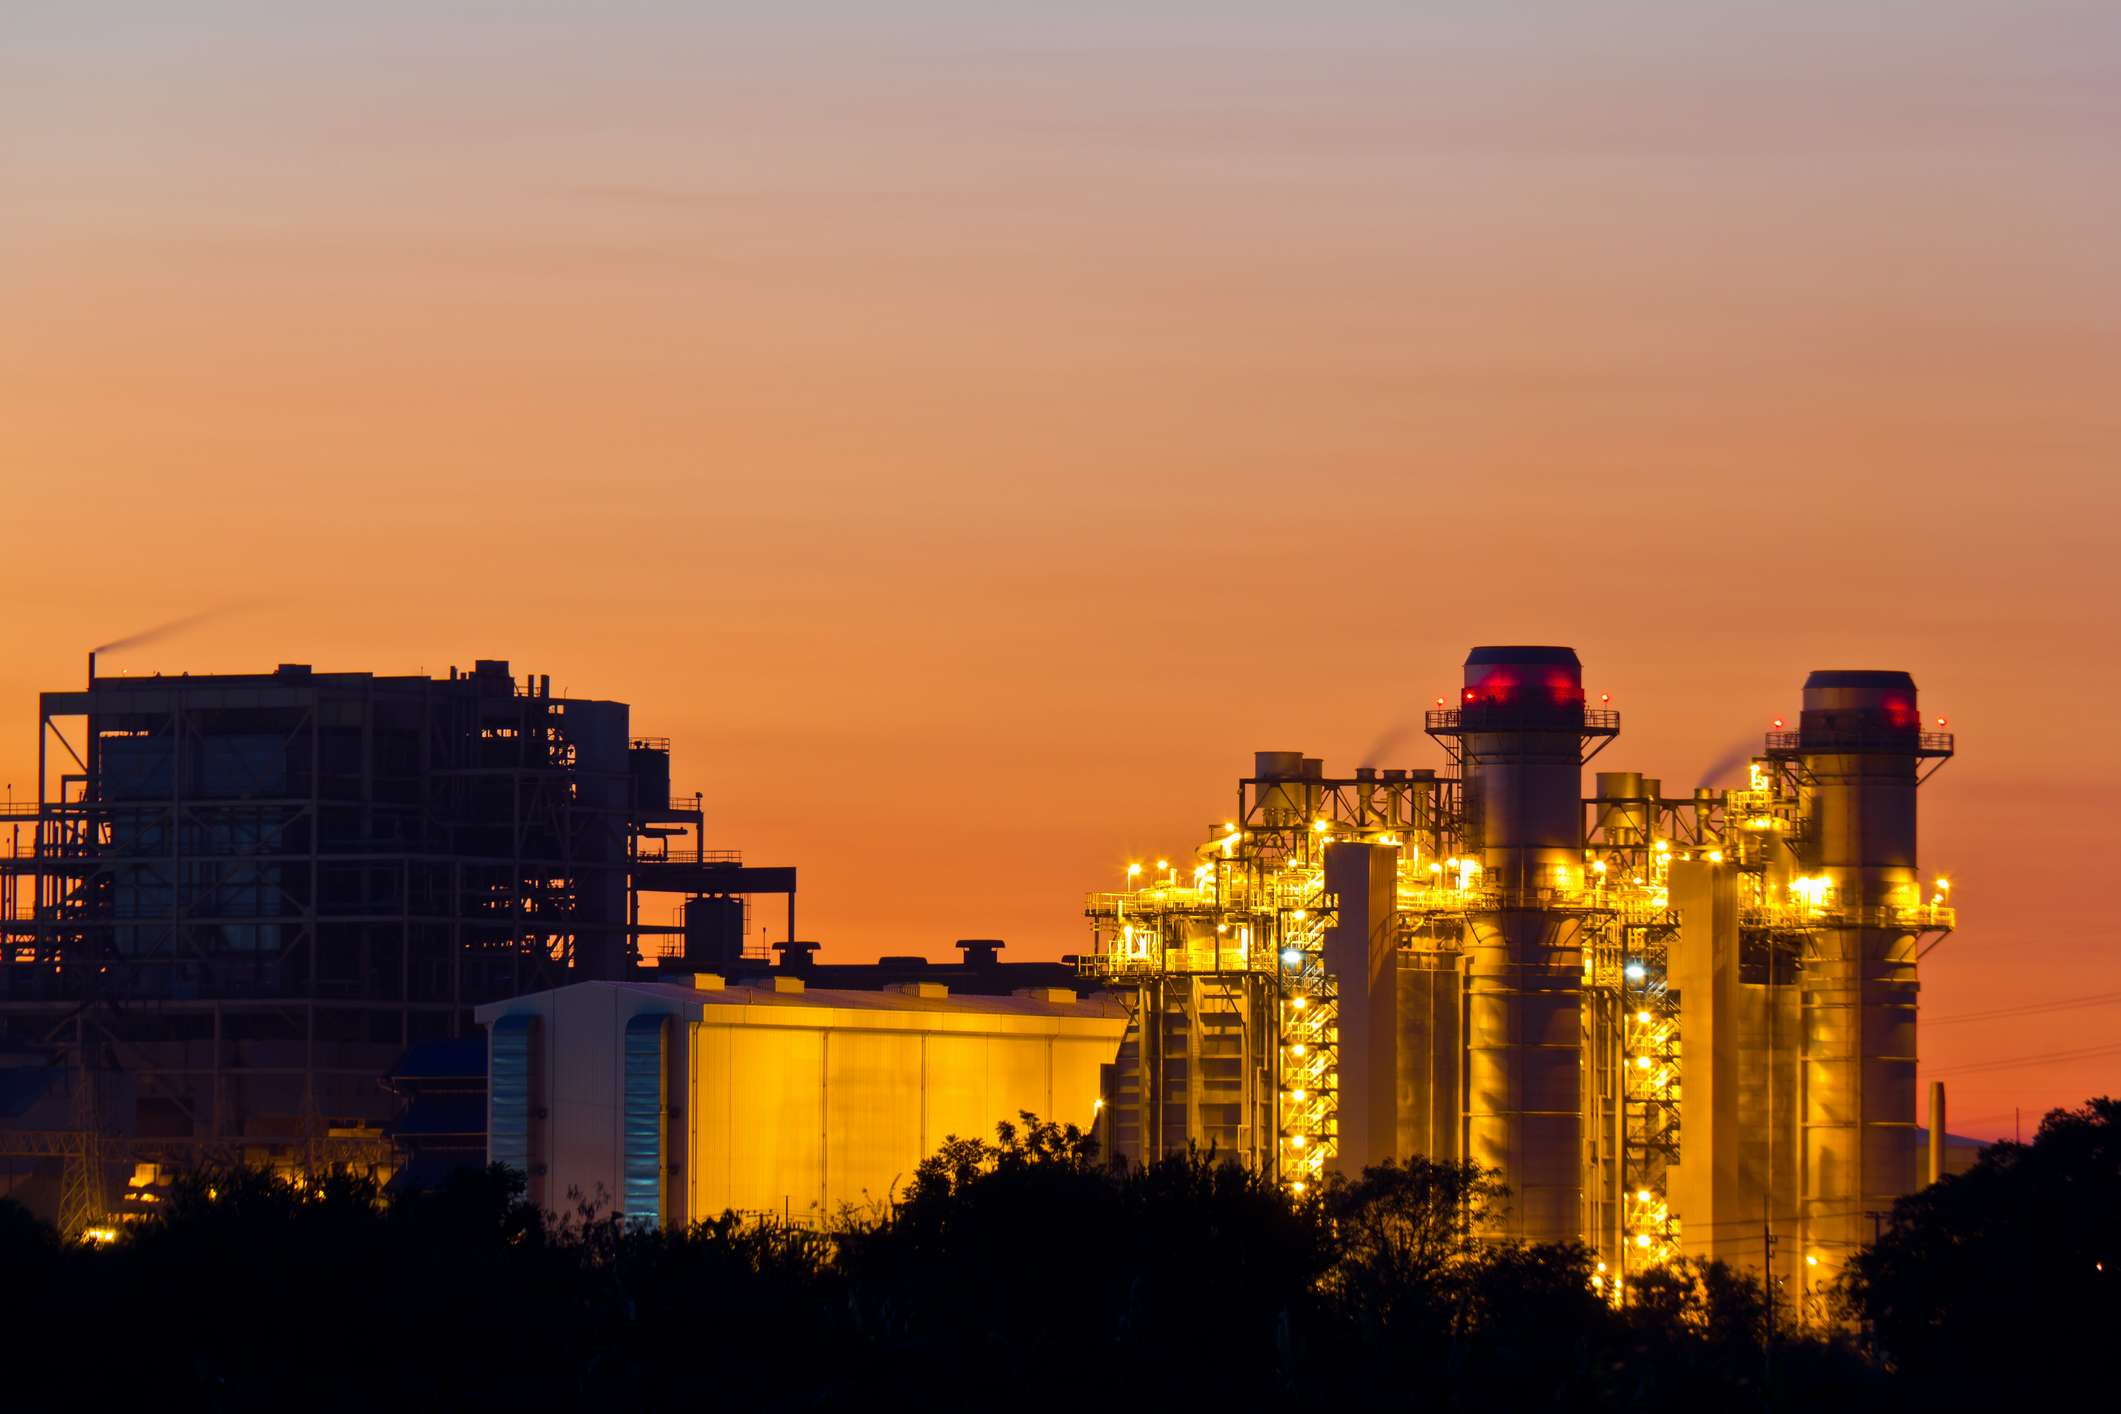 Gas Gen-Sets Becoming Viable Energy Source in Face of Steep Power Demand